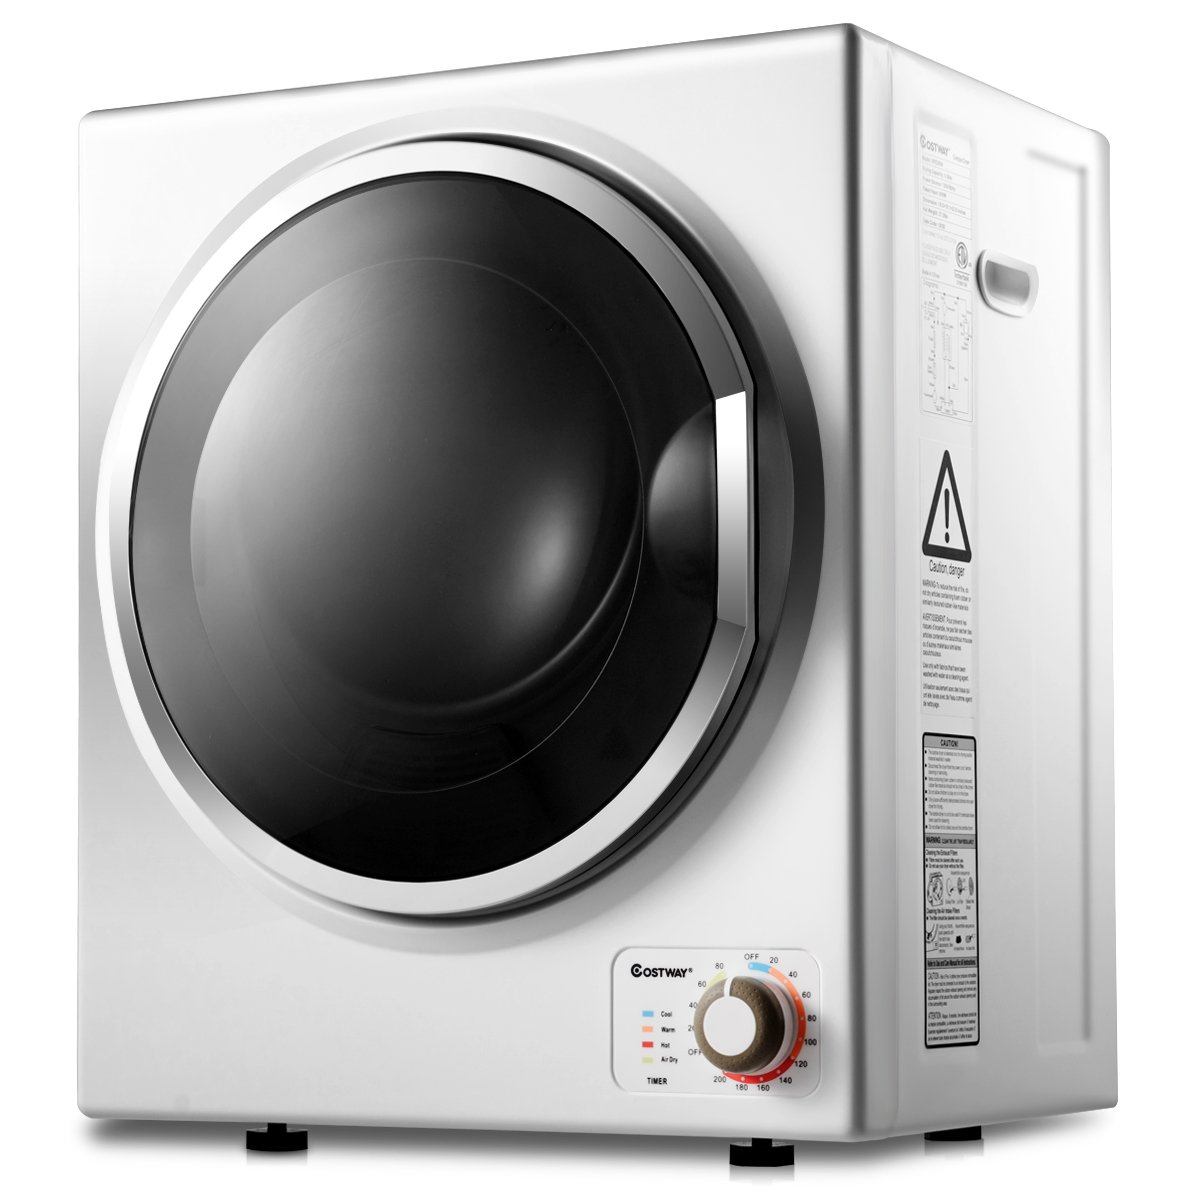 COSTWAY Tumble Dryer Electric Compact Stainless Steel Clothes Laundry Dryer